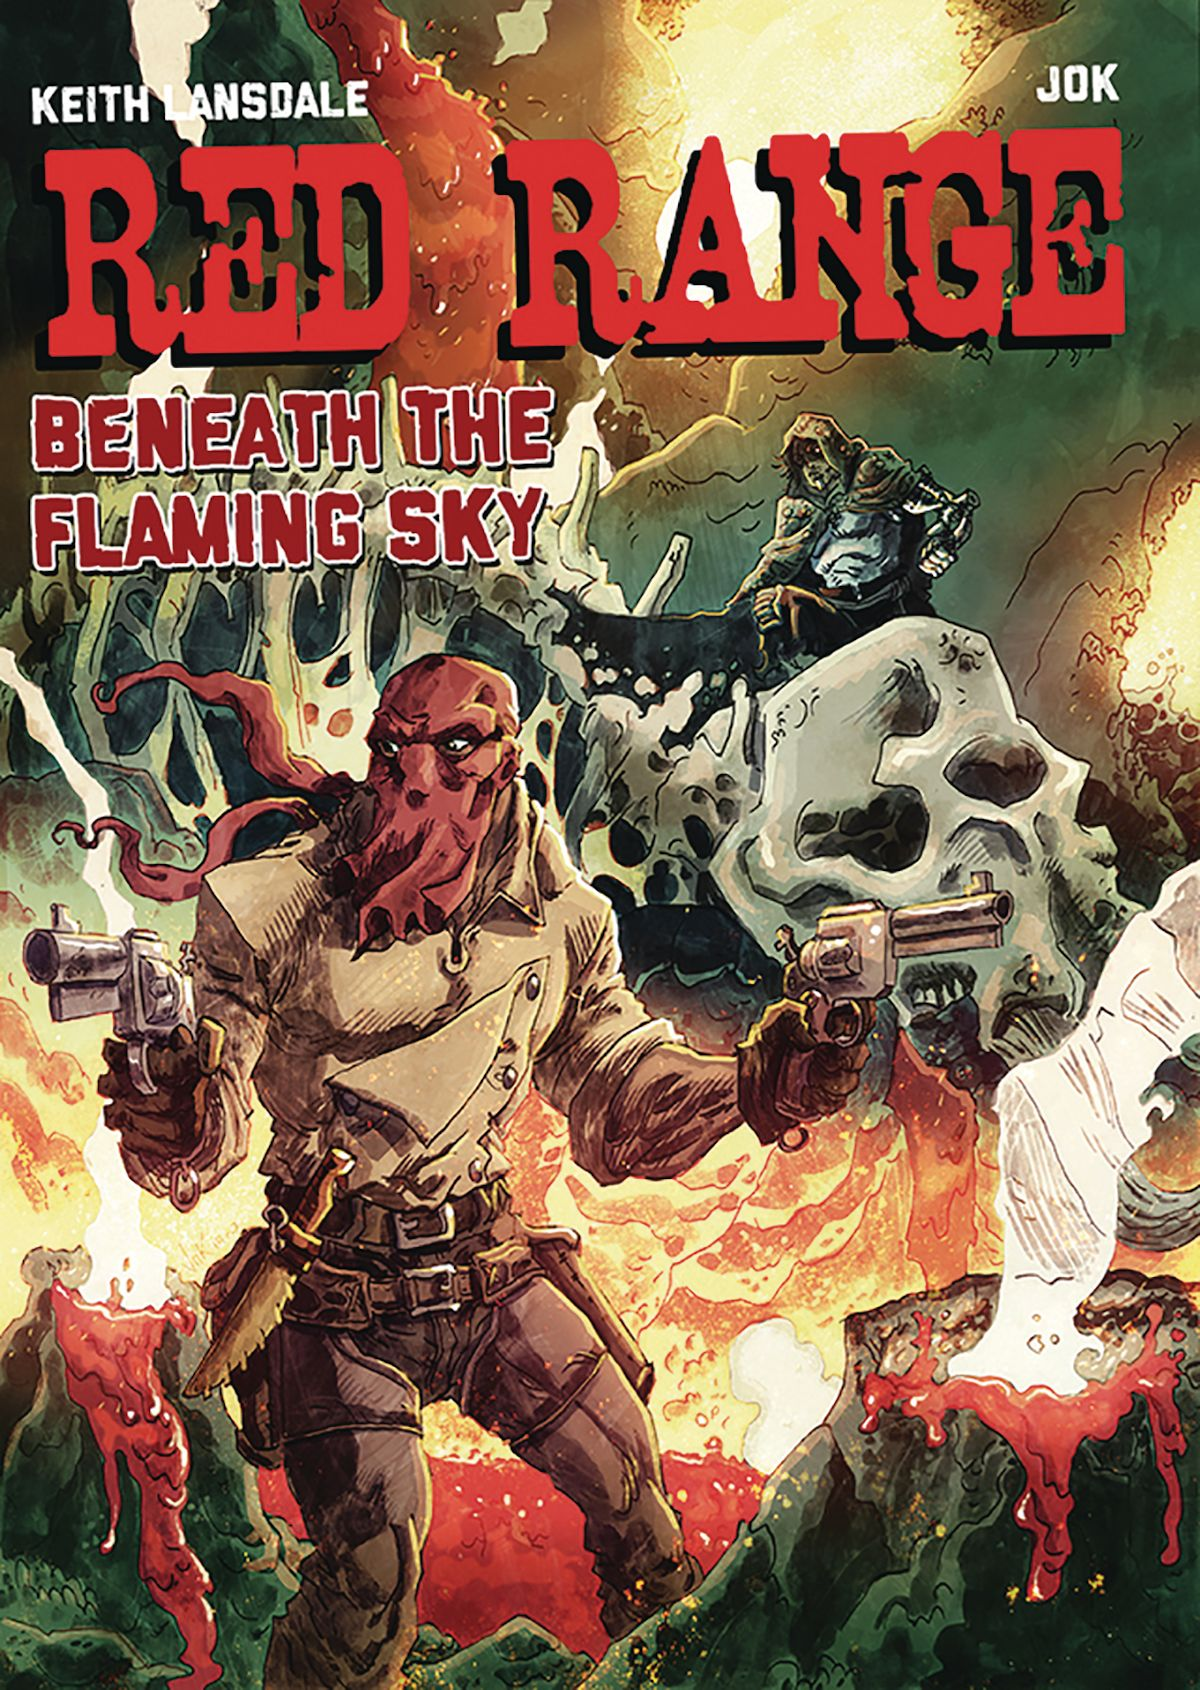 Red Range Beneath The Flaming Sky